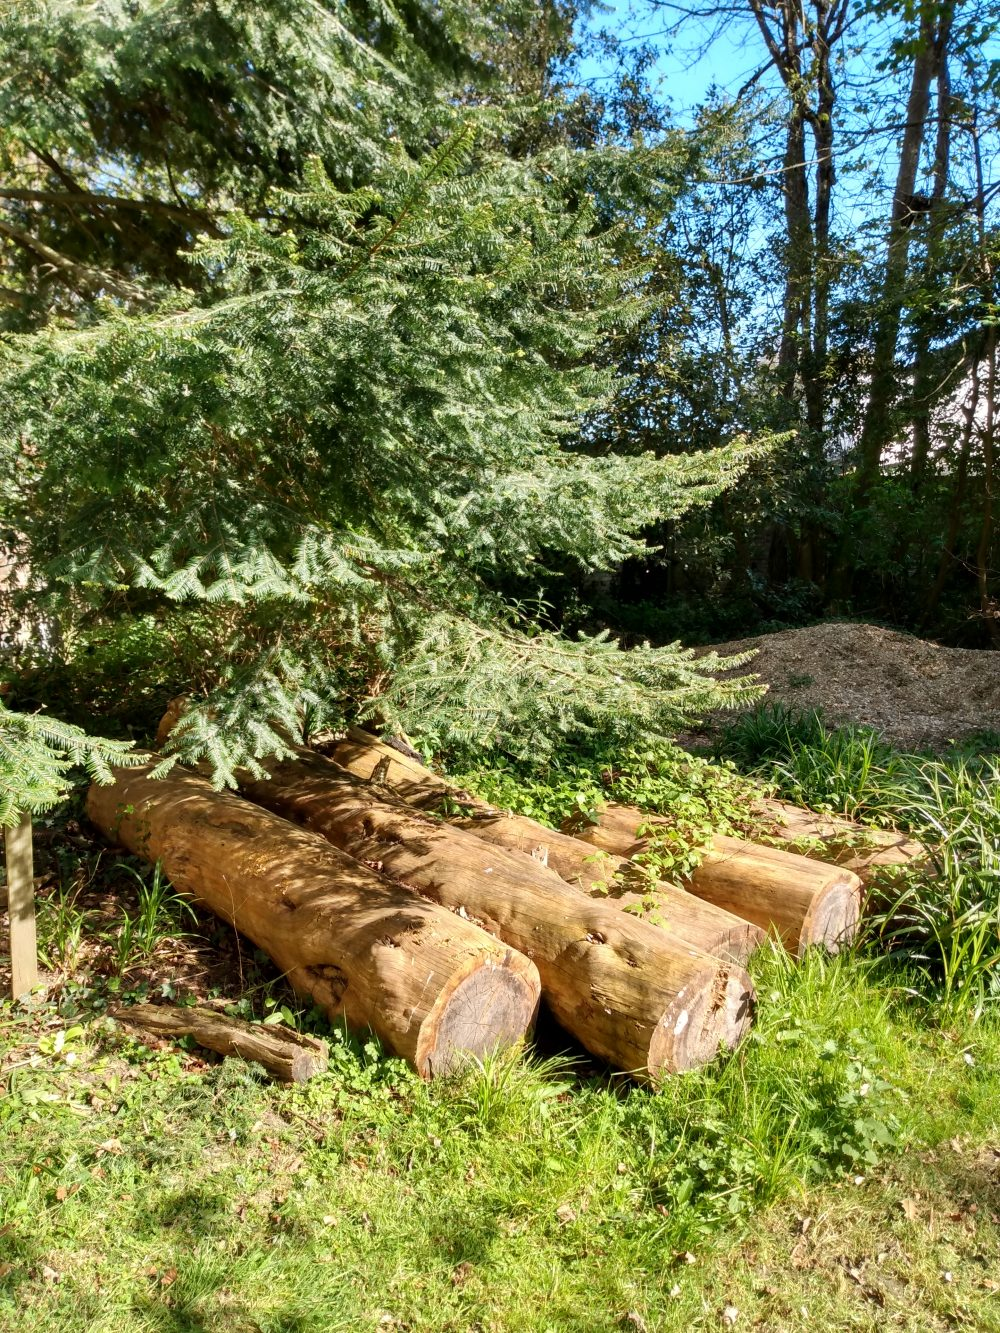 Piles of logs on the grass under fir tree with glimpse of blue sky